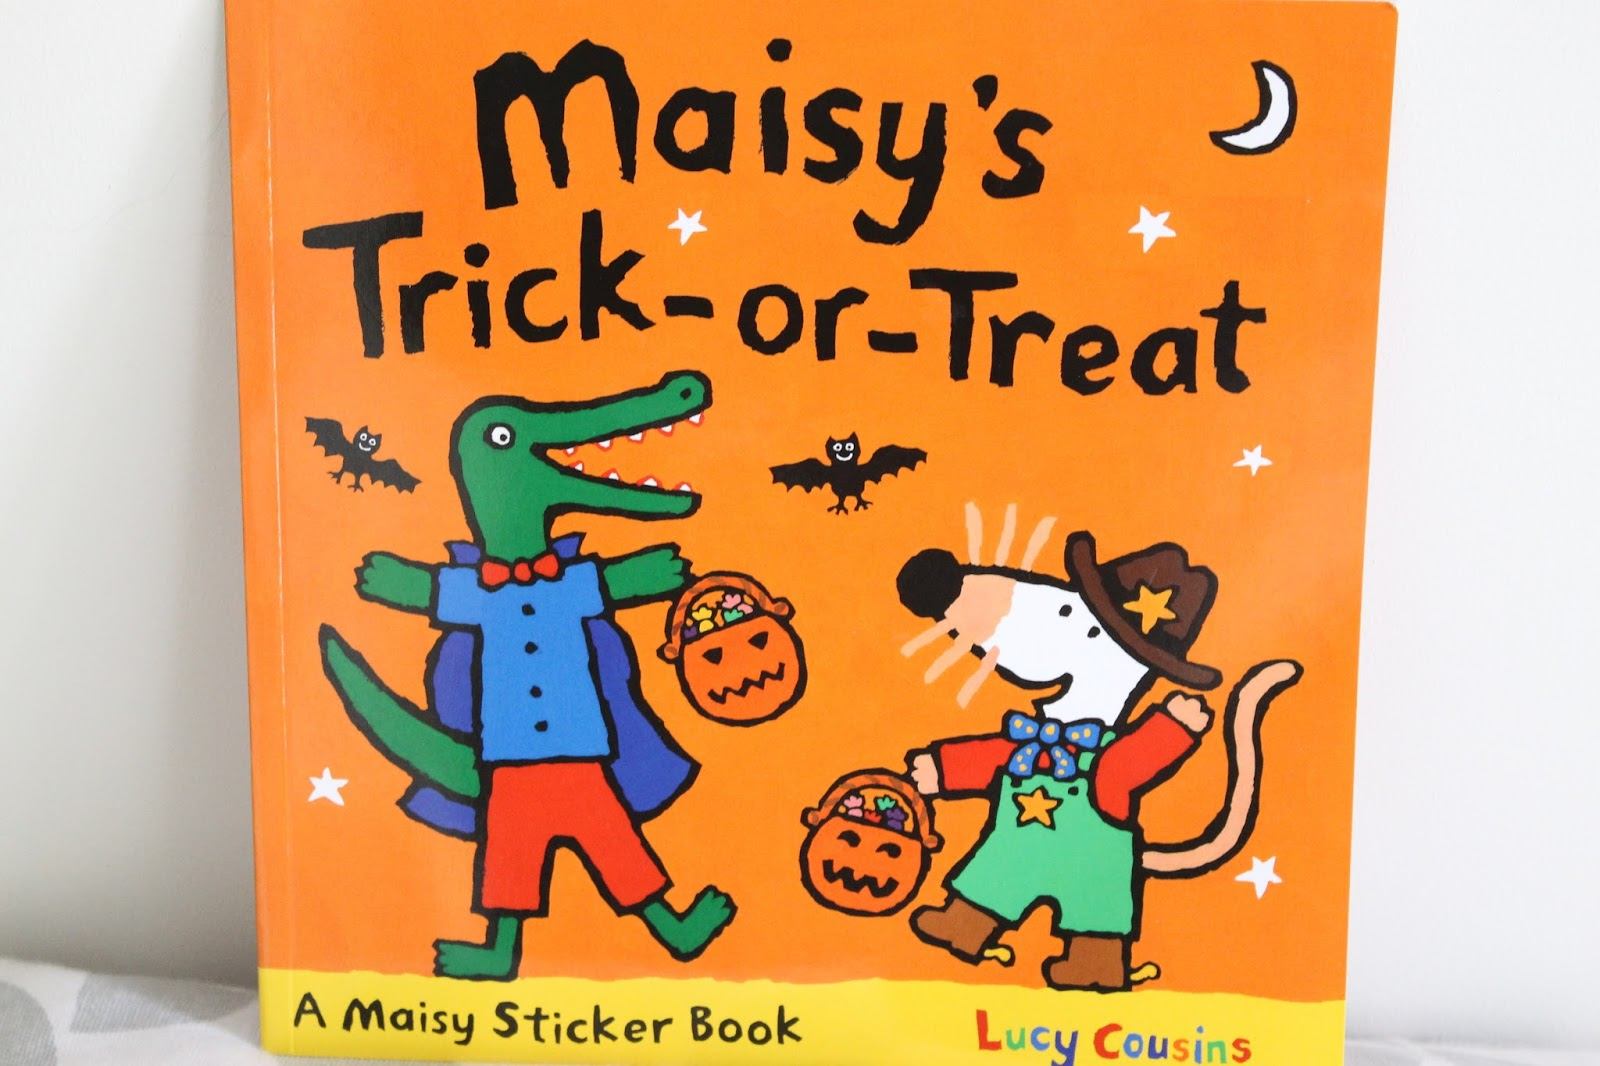 kids books halloween, halloween books, childrens books for halloween, toddler books for halloween, maisys trick or treat